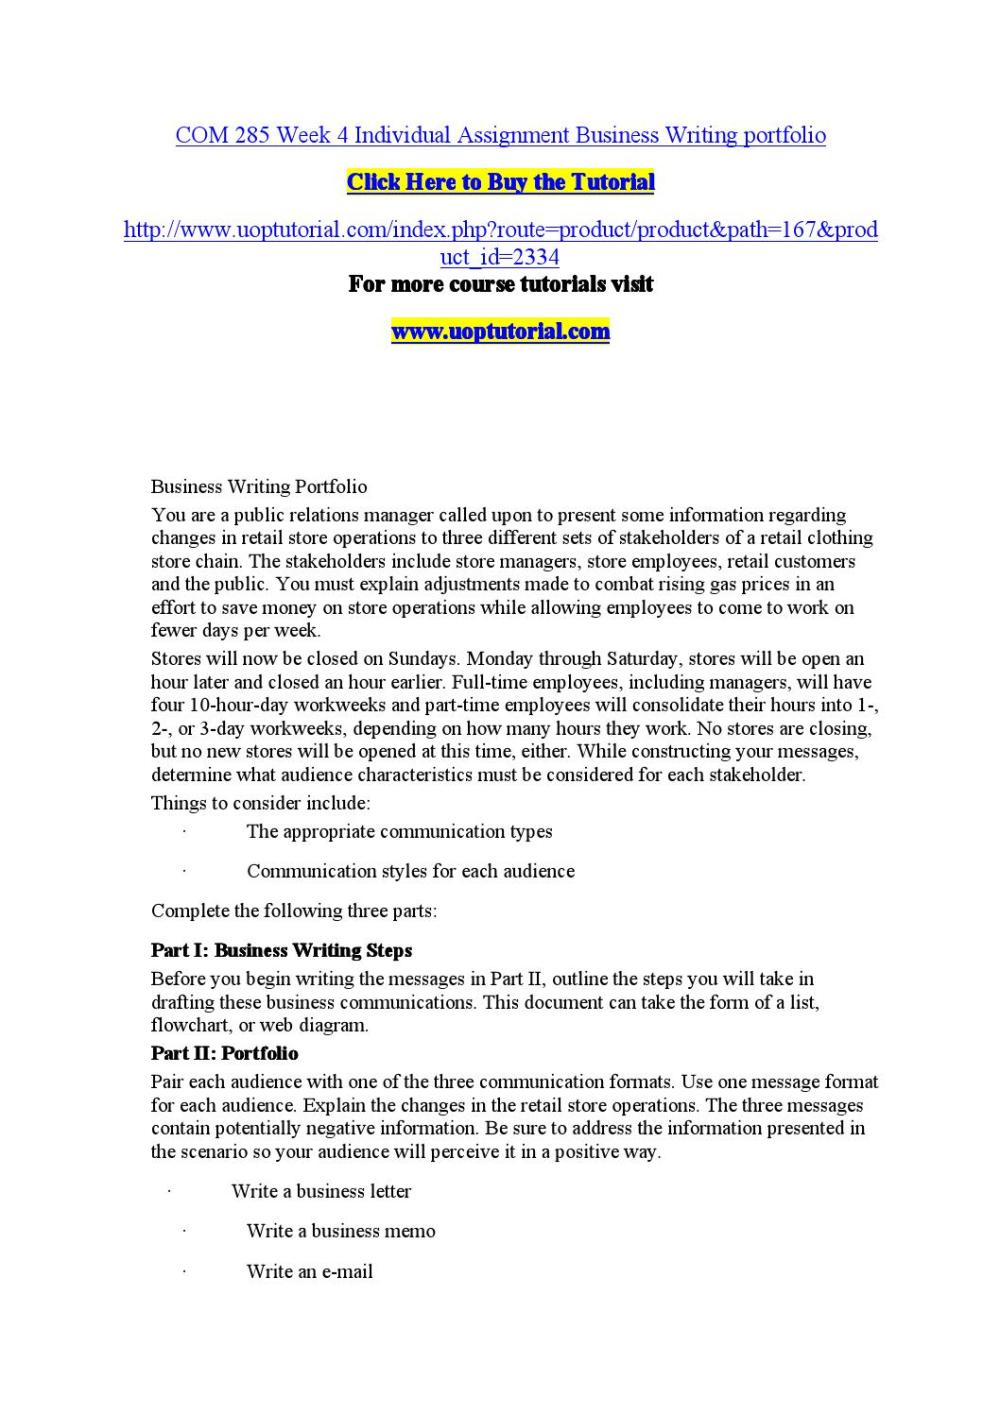 medium resolution of com 285 week 4 individual assignment the appropriate communication types by nagahsa2718 issuu